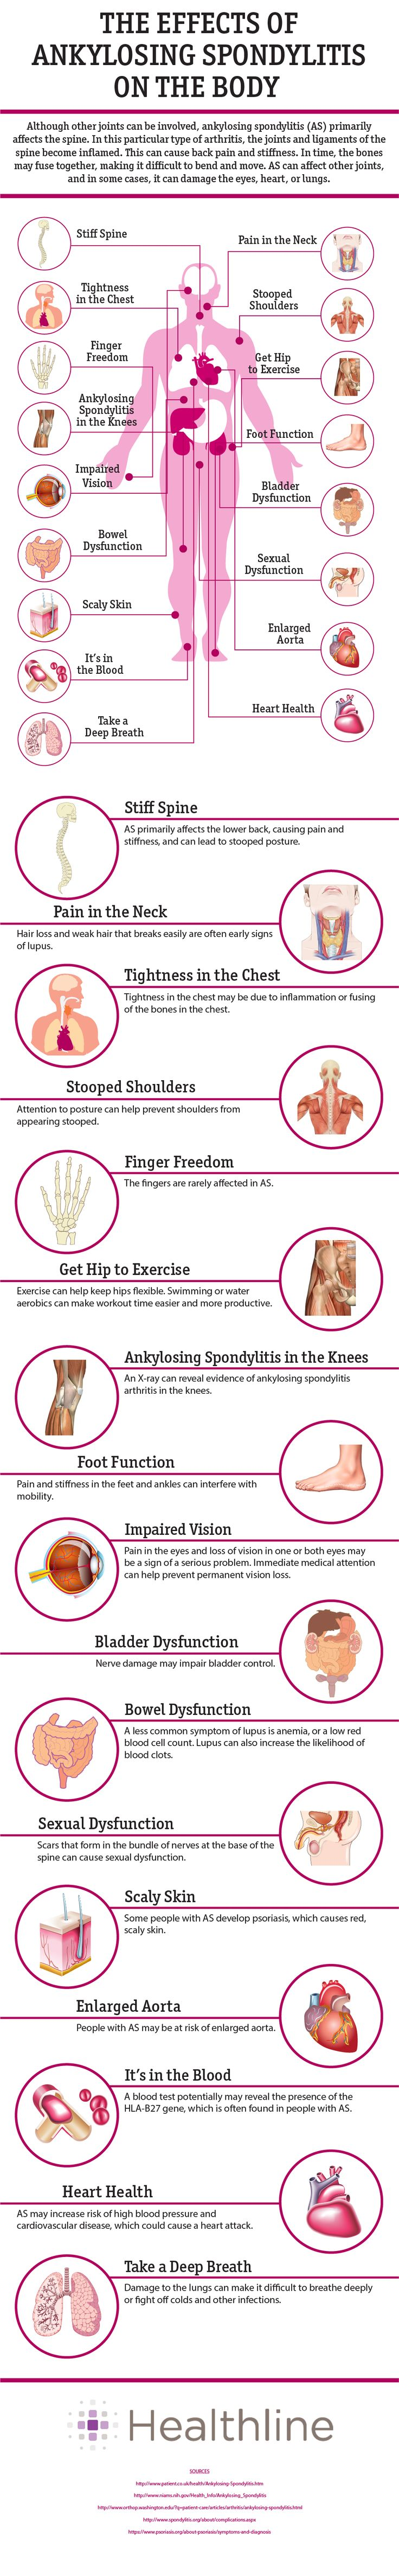 The Effects of Ankylosing Spondylitis on the Body -- nearly perfect!